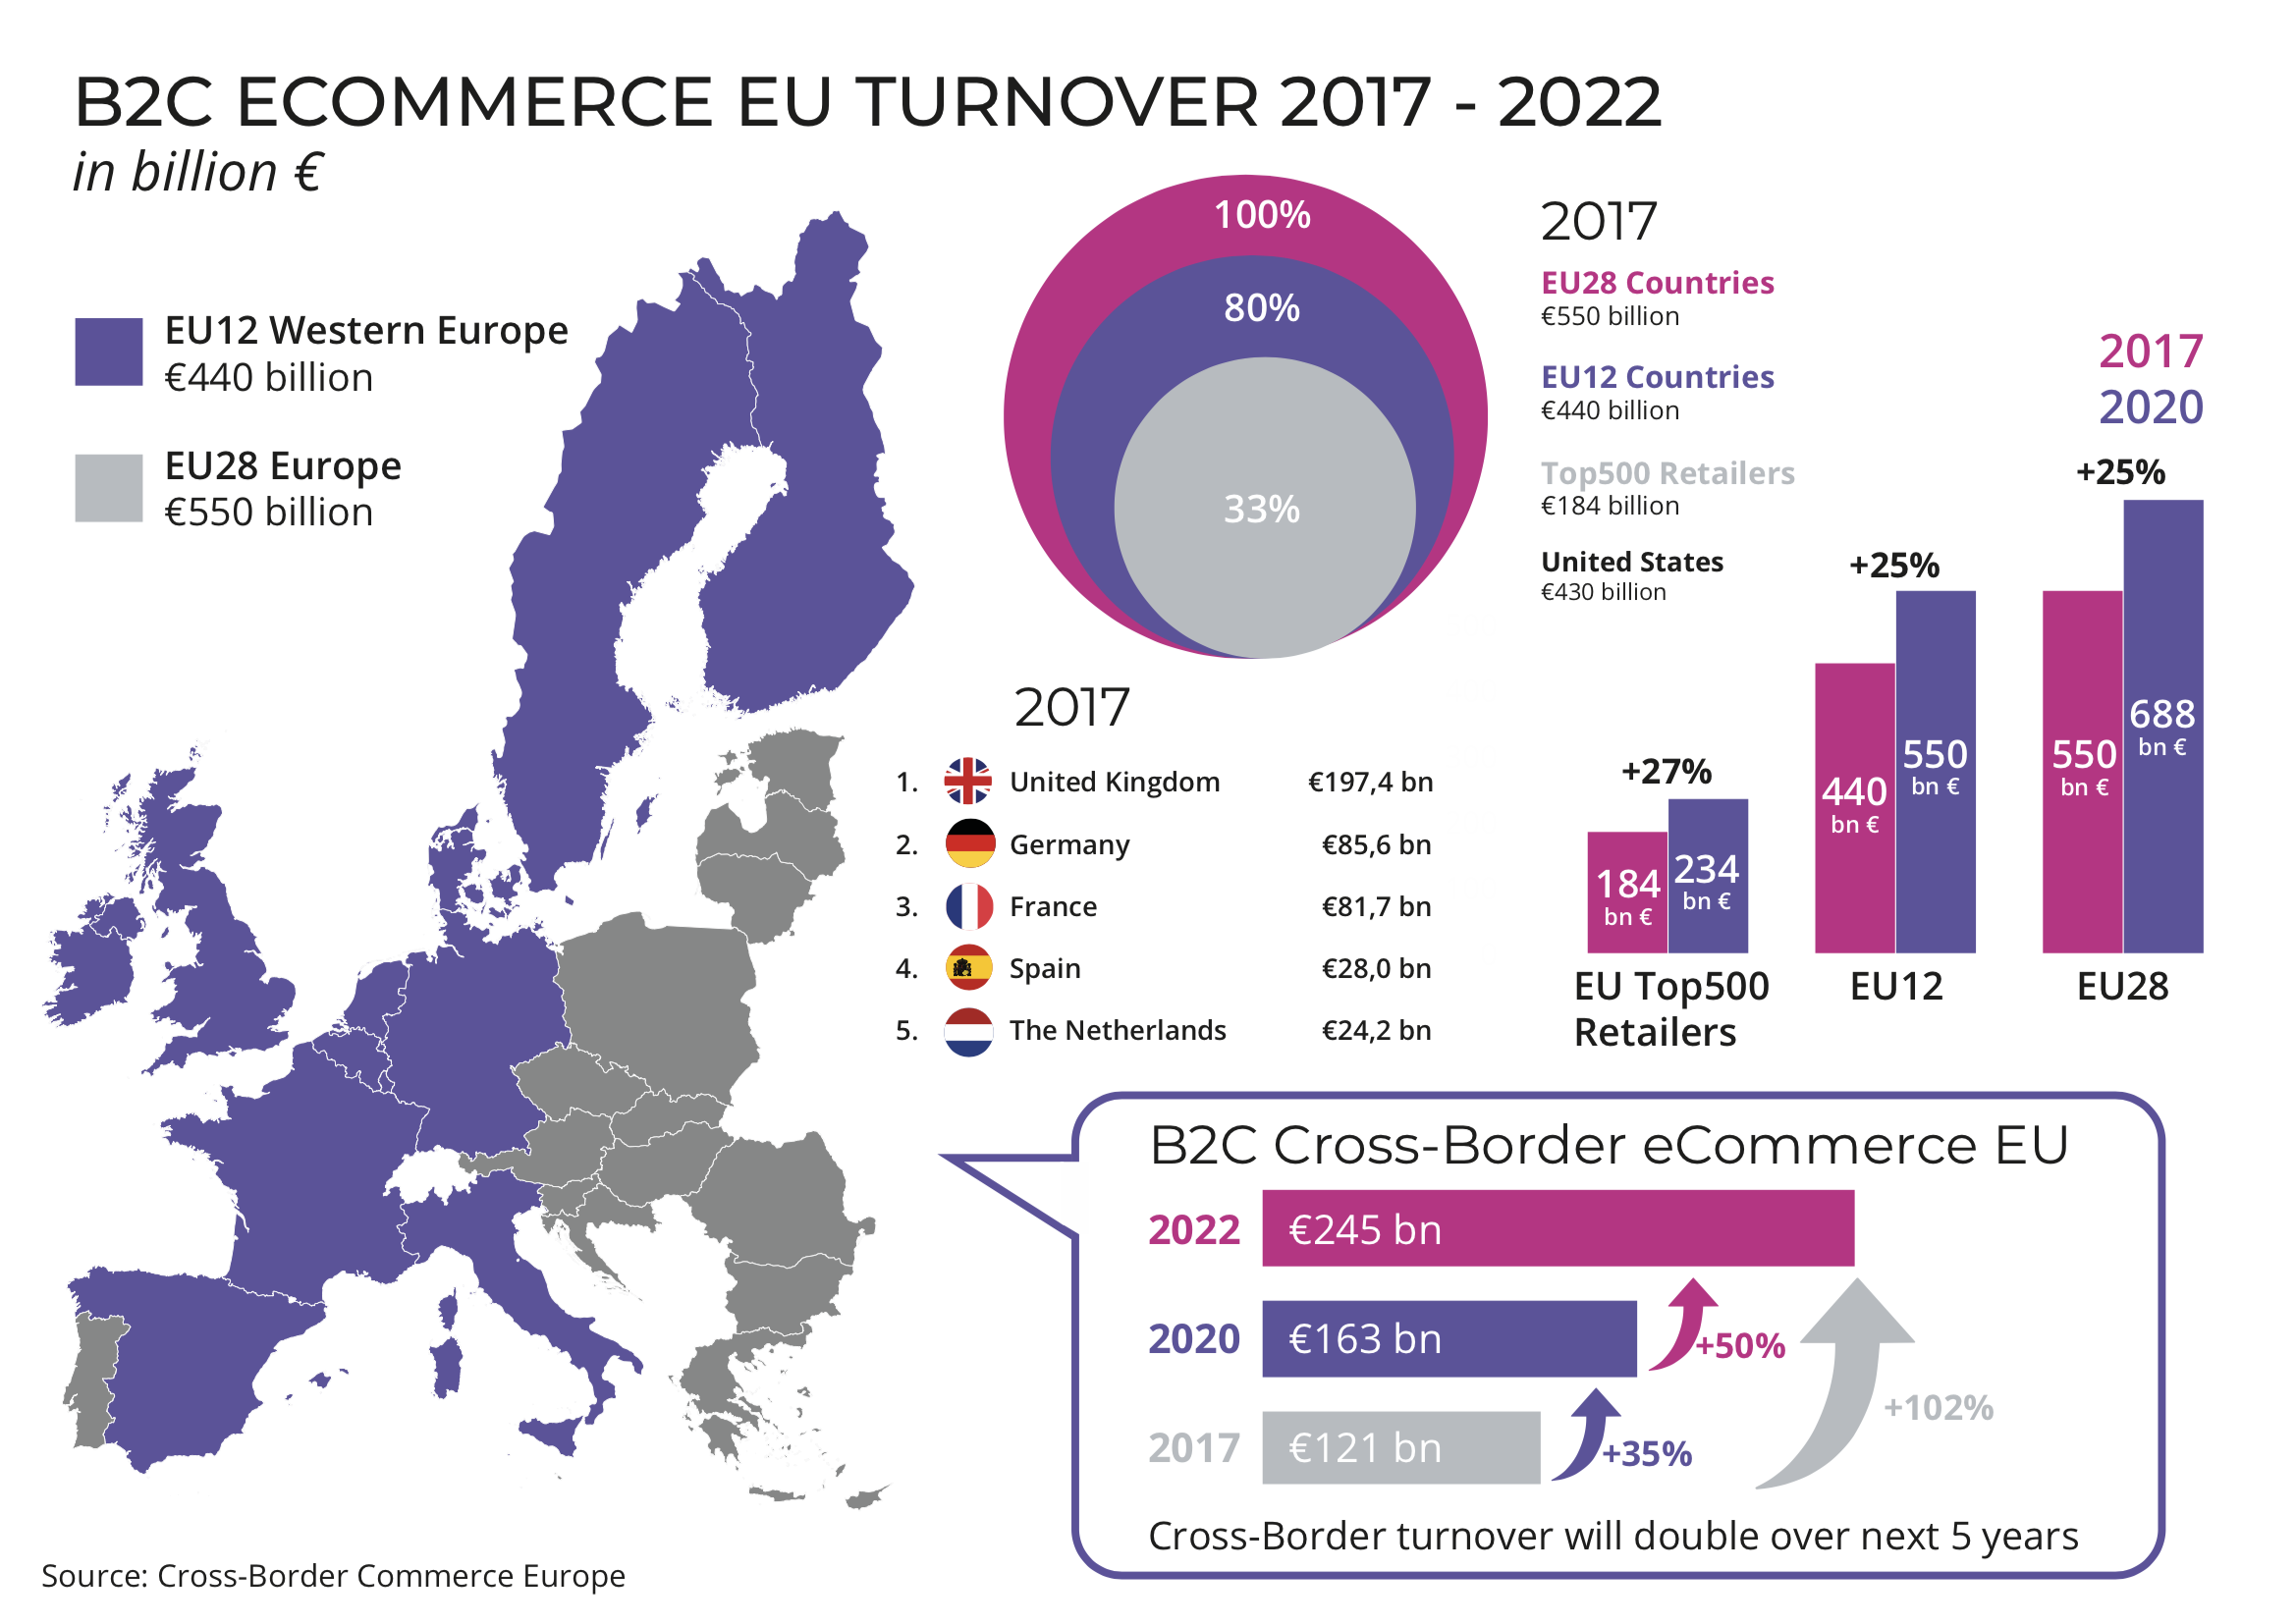 b2c-ecommerce-turnover-europe-2017